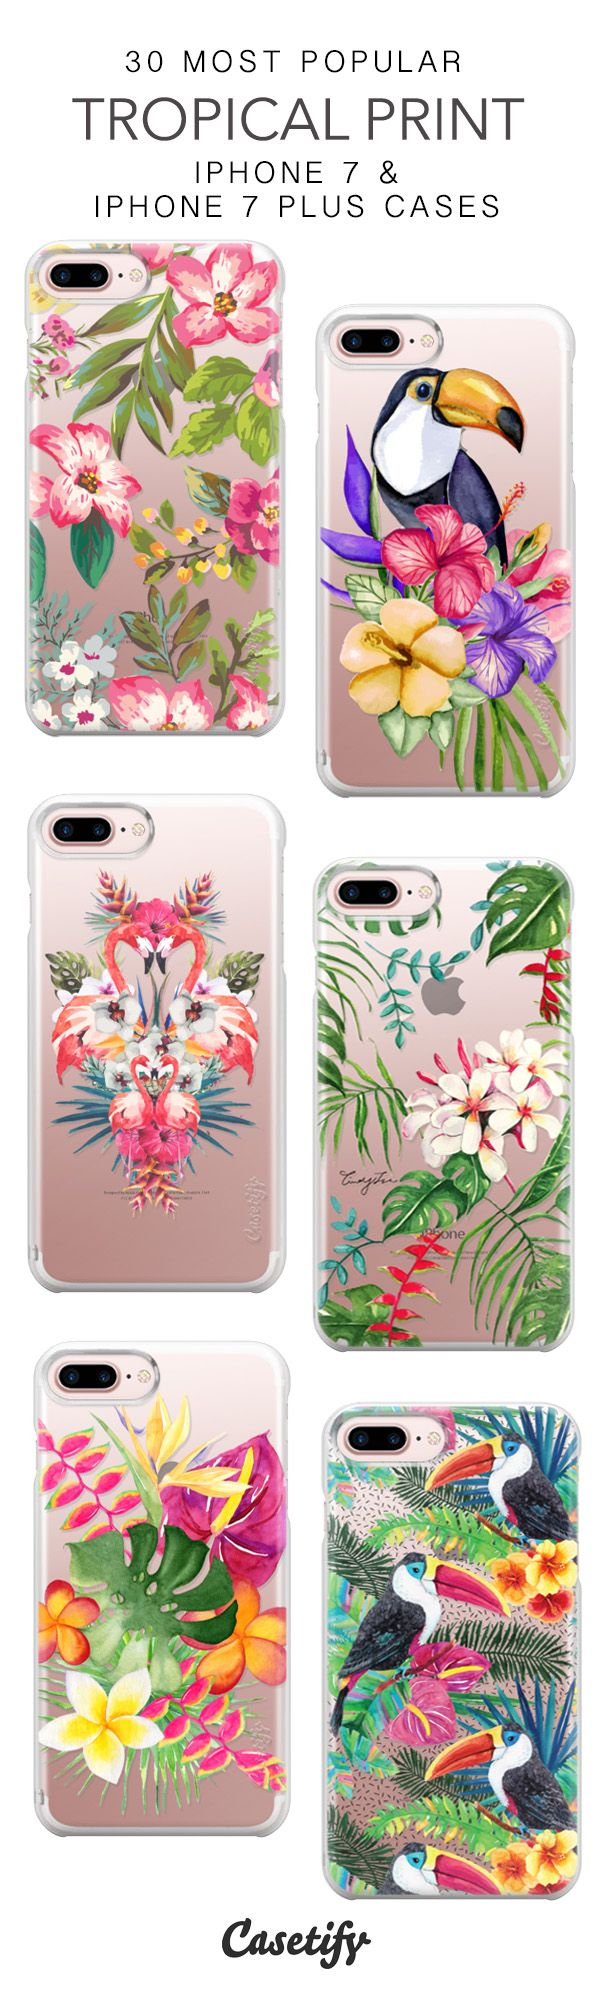 30 Most Popular Tropical Print Protective iPhone 7 Cases and iPhone 7 Plus Cases. More Summer case here > https://www.casetify.com/collections/top_100_designs#/?vc=FjE7QIZvjA